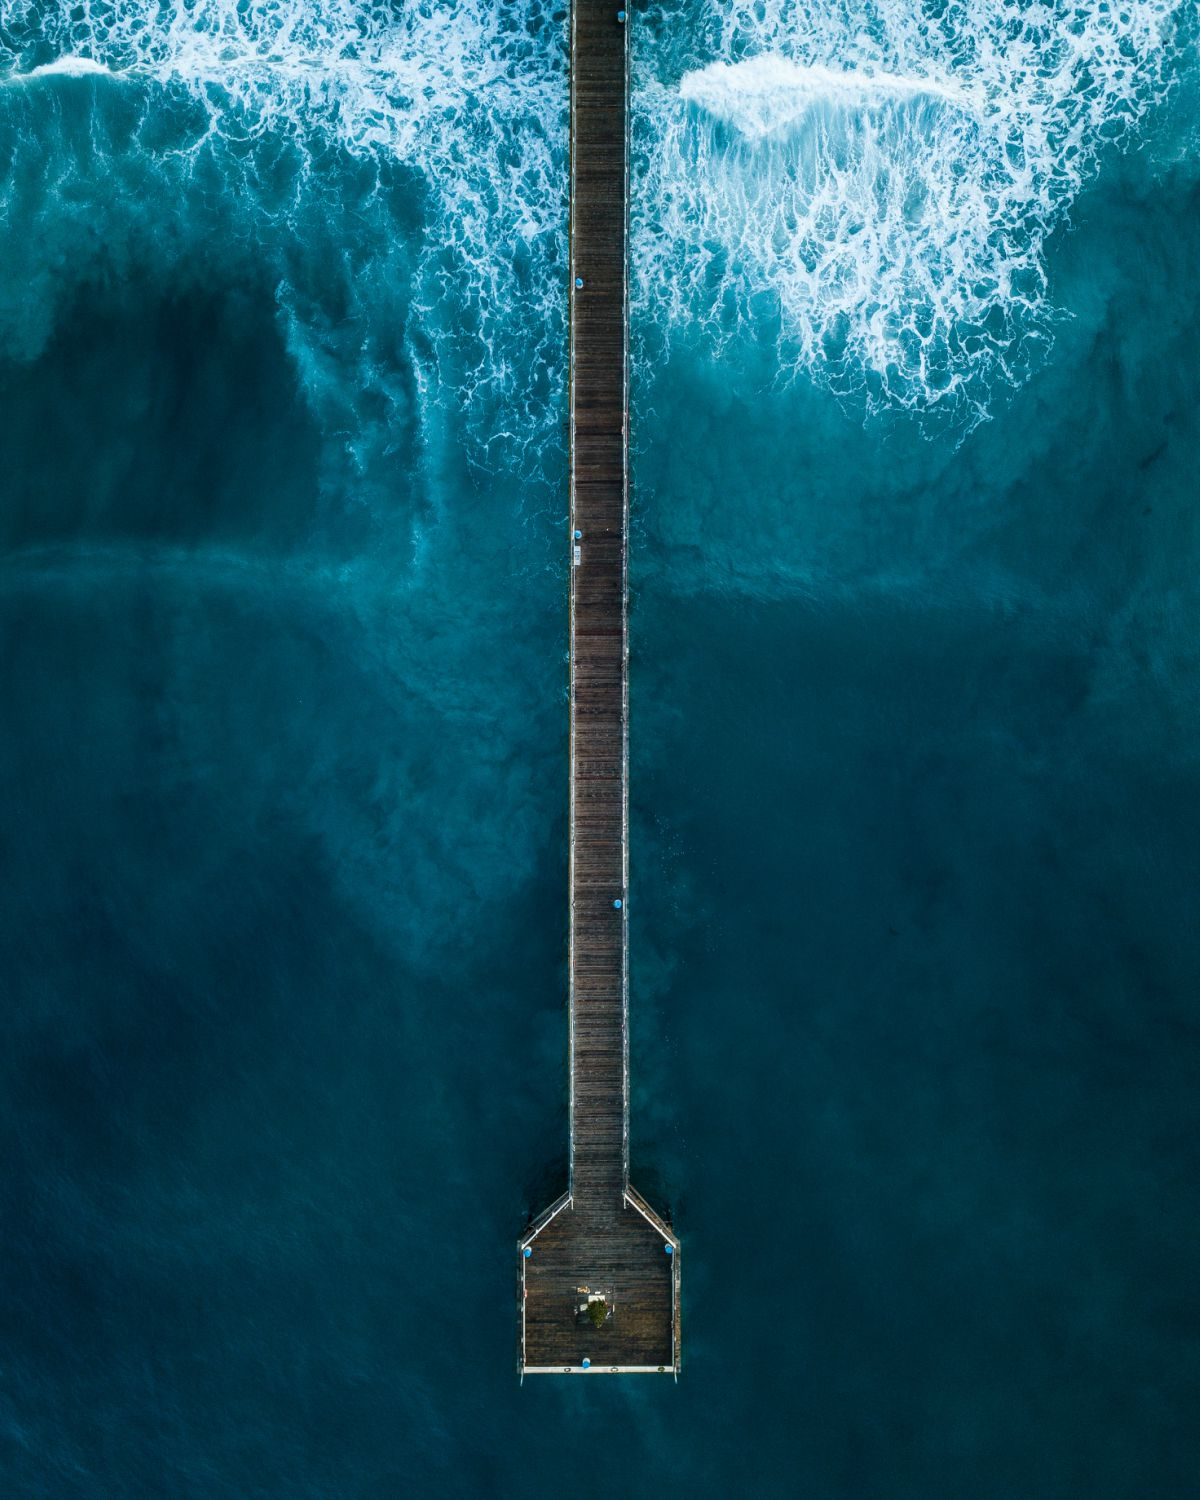 Overheadphoto of a pier on blue ocean